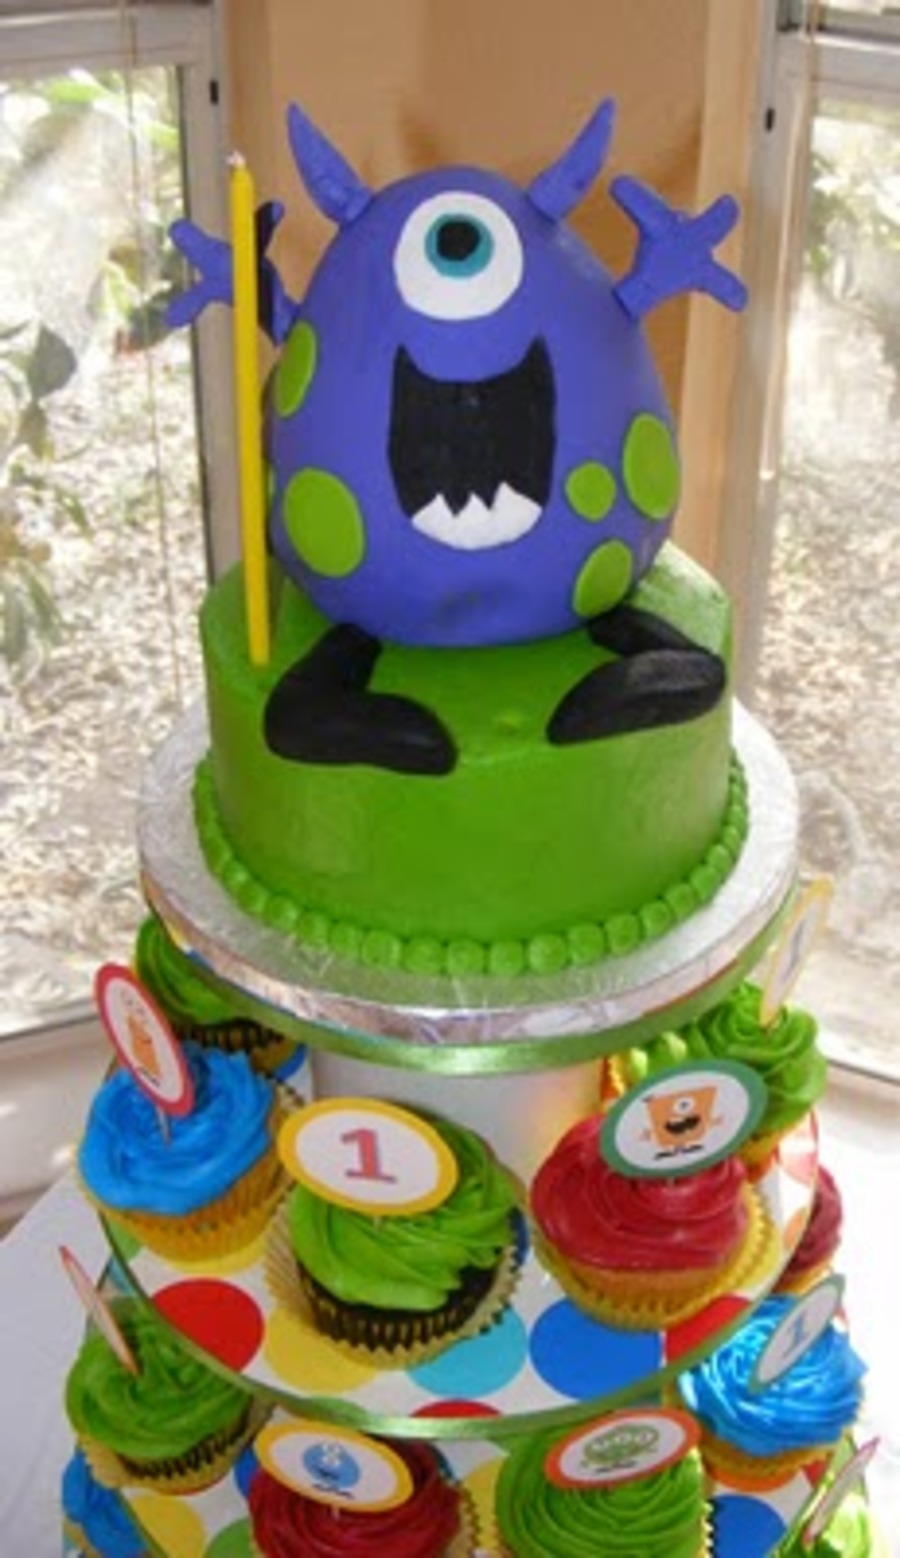 Tremendous Monster Birthday Cake Cupcake Tower Cakecentral Com Funny Birthday Cards Online Inifofree Goldxyz